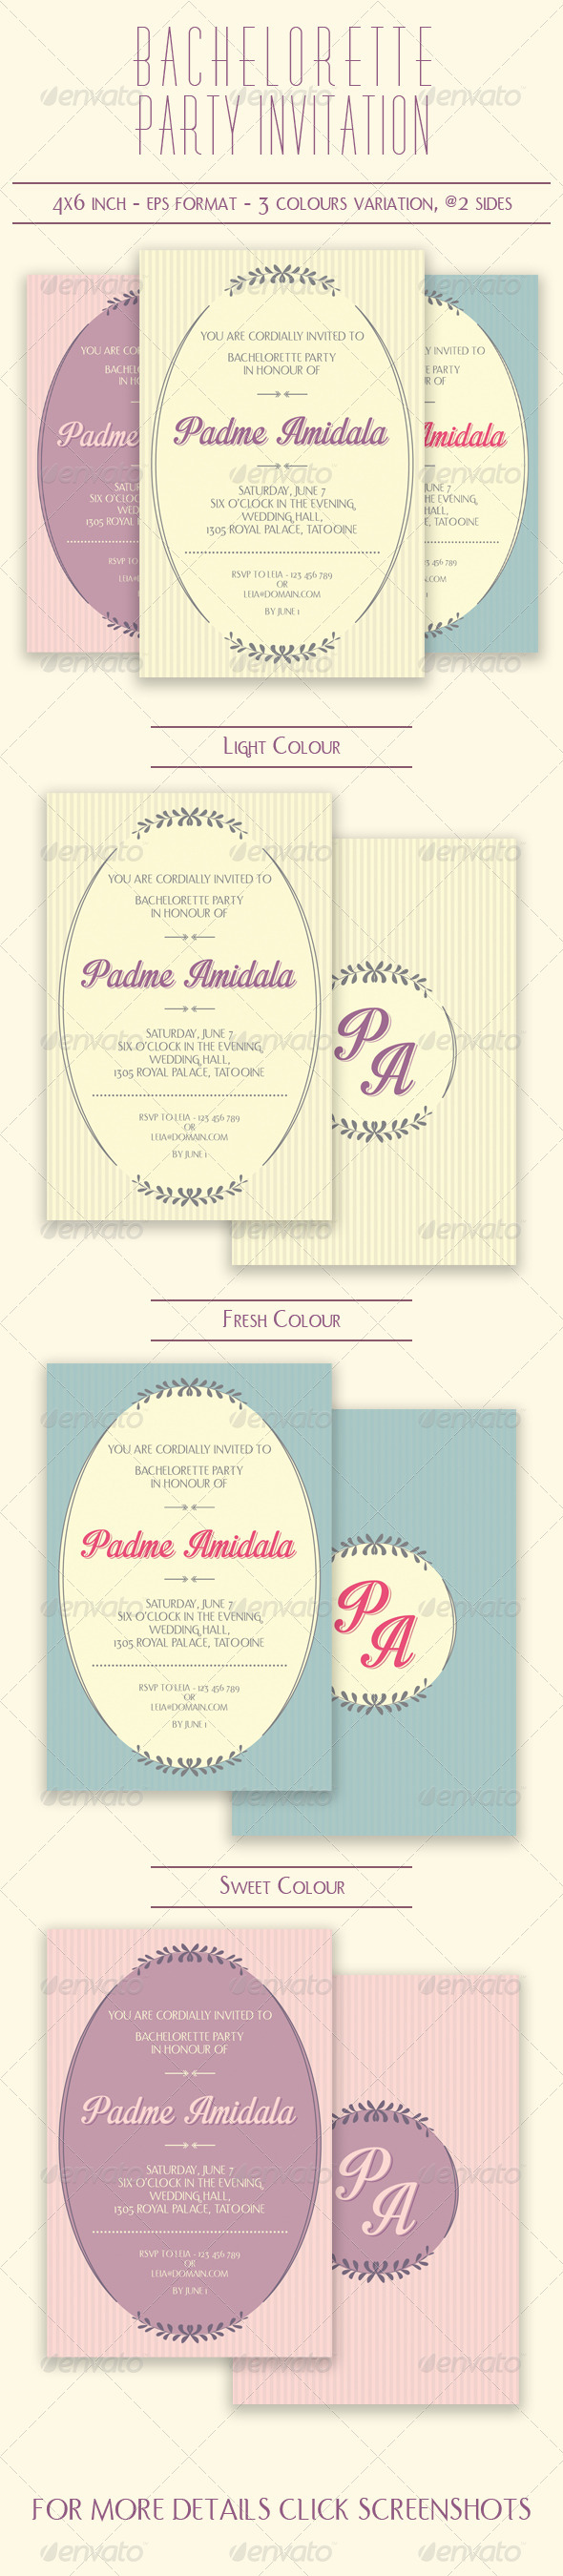 GraphicRiver Bachelorette Party Invitation 7820453